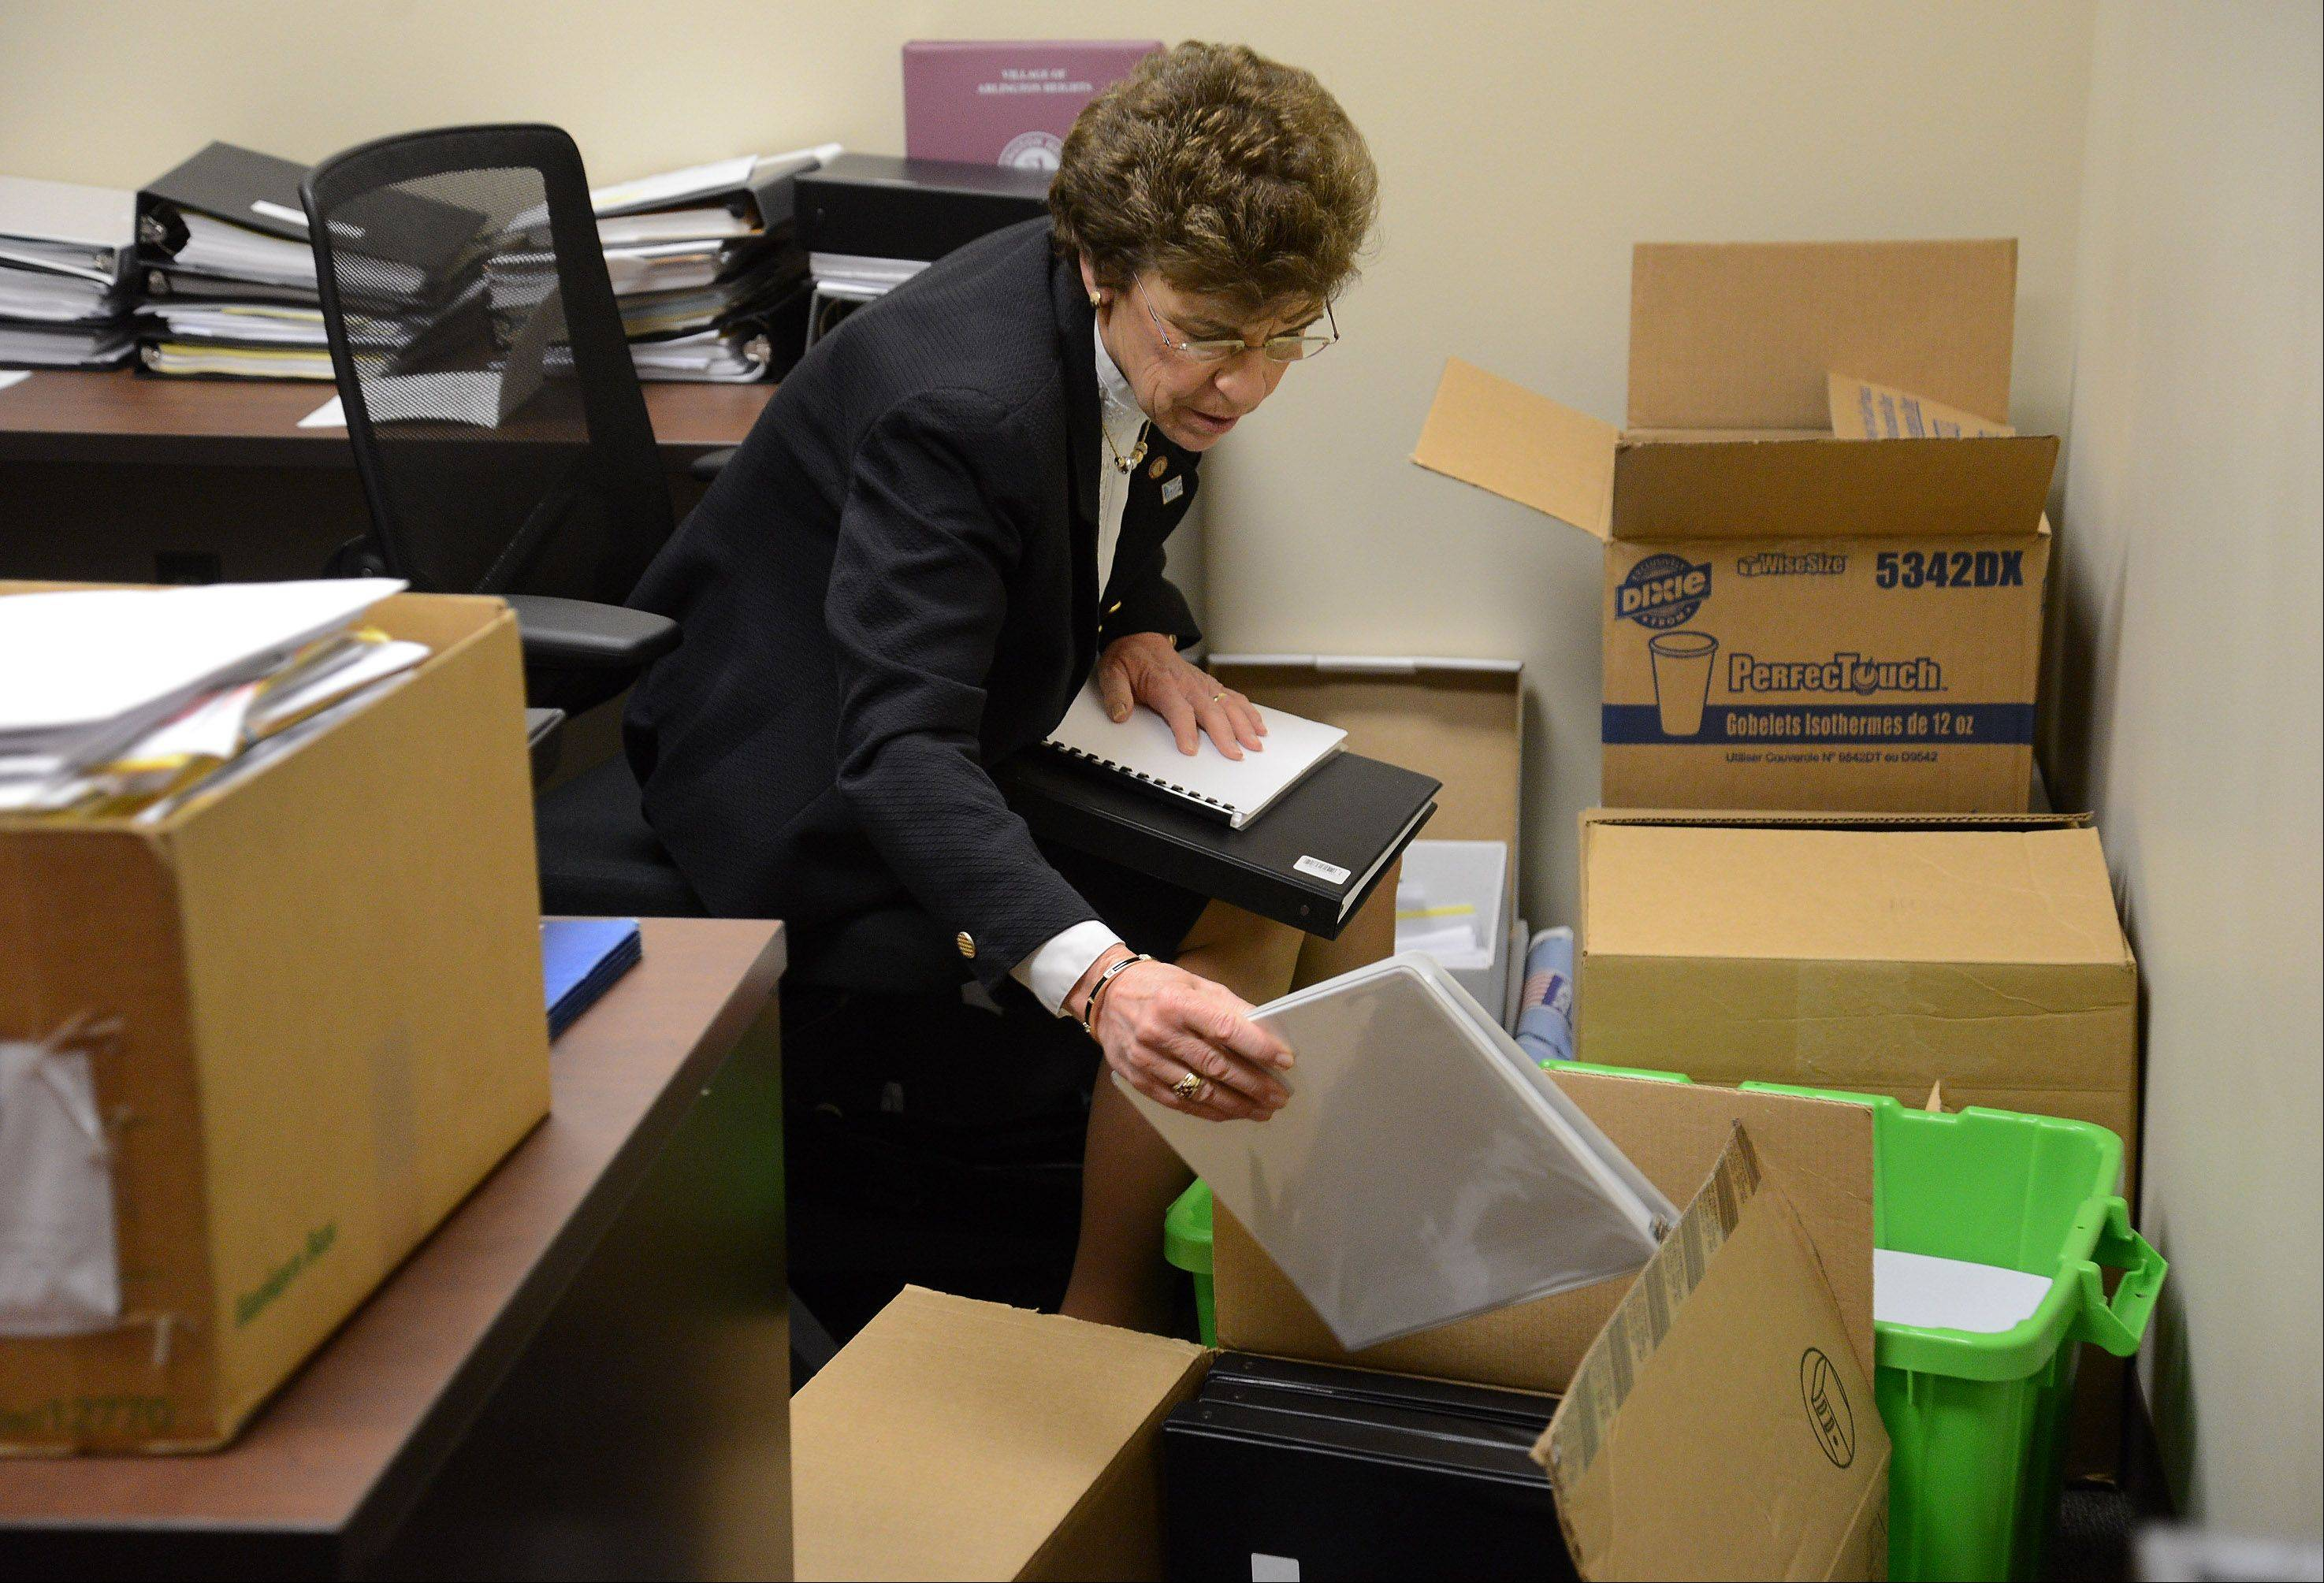 Outgoing Arlington Heights Mayor Arlene Mulder cleans out her temporary office.